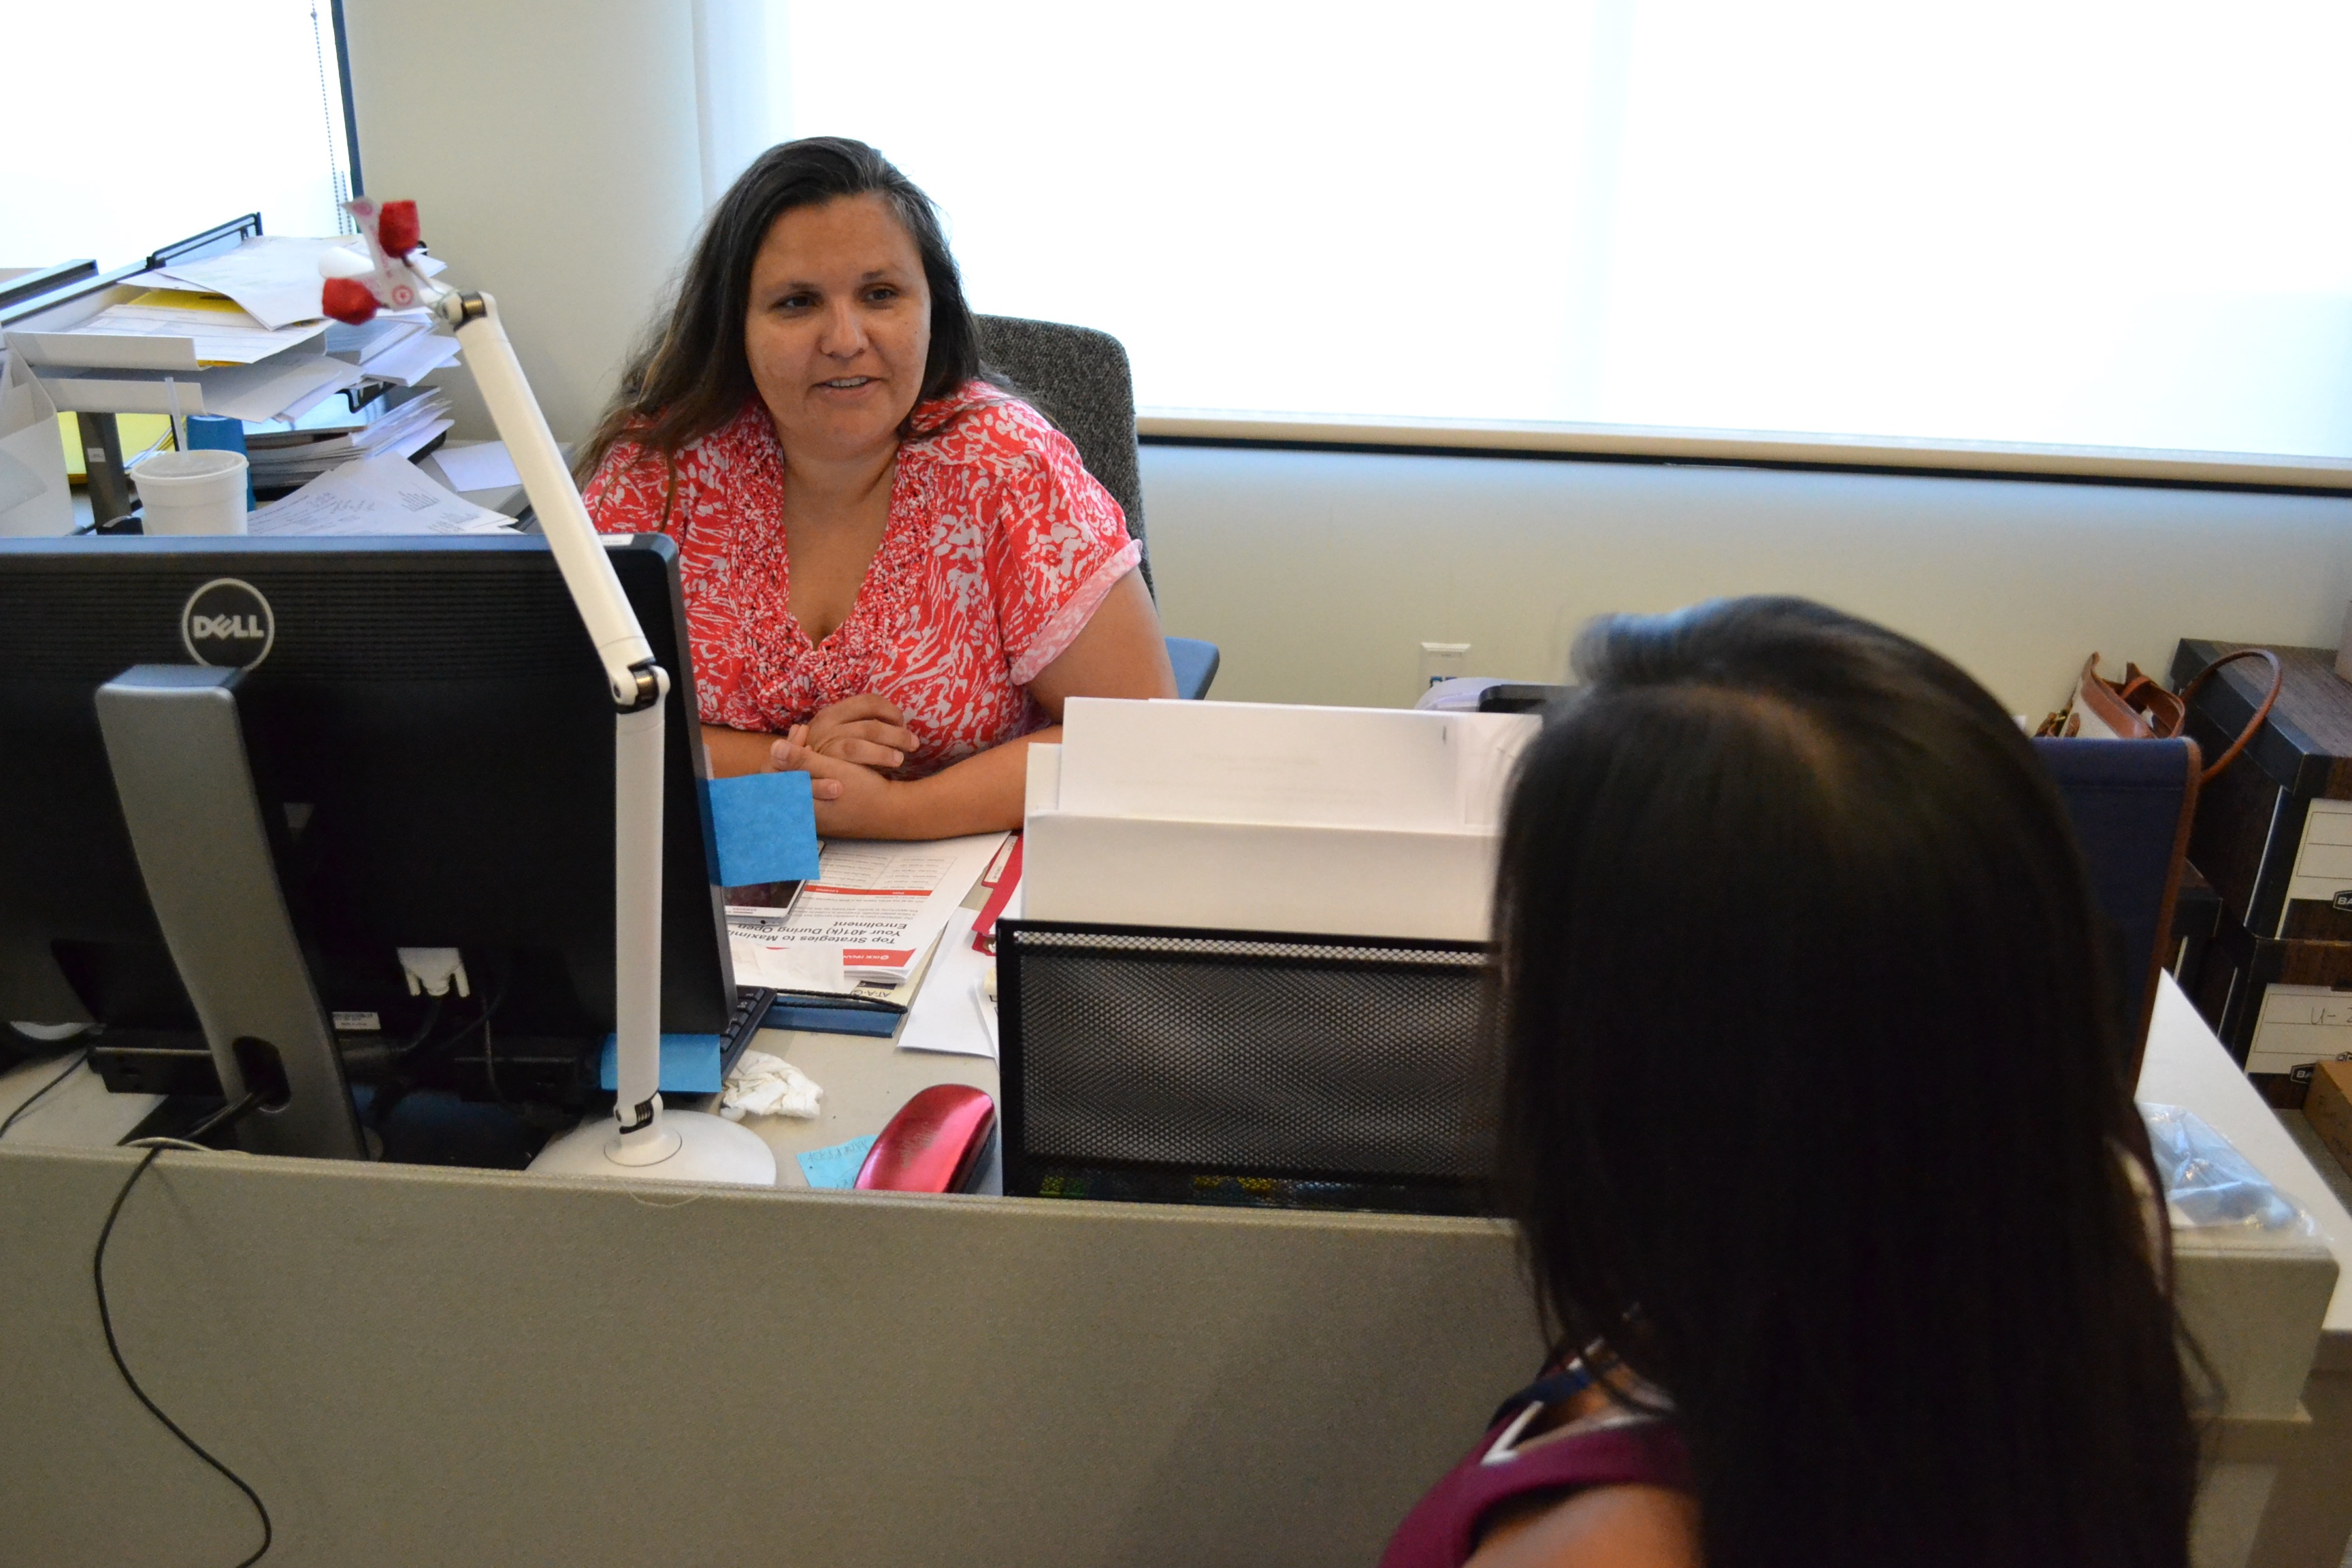 Pawhuska, Okla. (July 22, 2016) Cherokee Cheshewalla, Financial Assistance Case Manager, provides valuable constituent service by assisting applicants to apply for and receive the help they need.